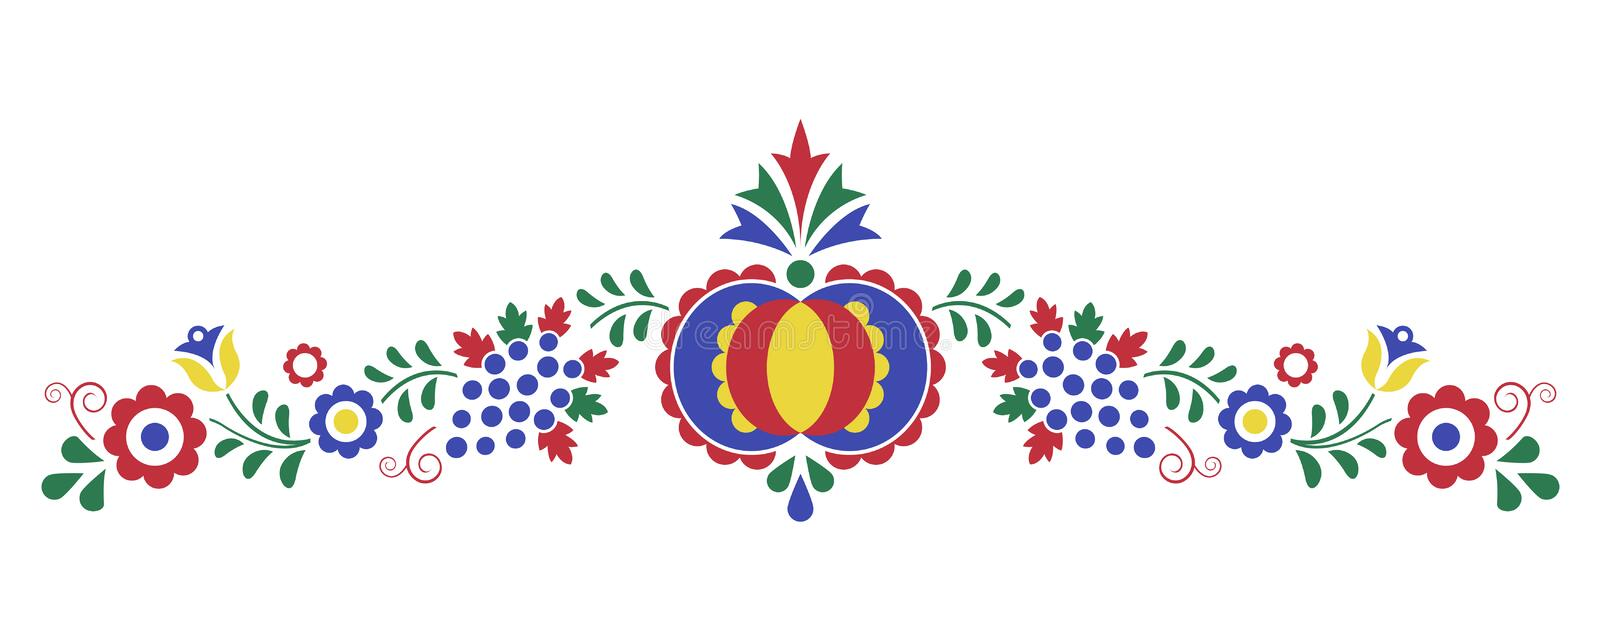 Traditional folk ornament, the Moravian ornament. From region Slovacko, floral embroidery symbol isolated on white background, vector illustration stock illustration